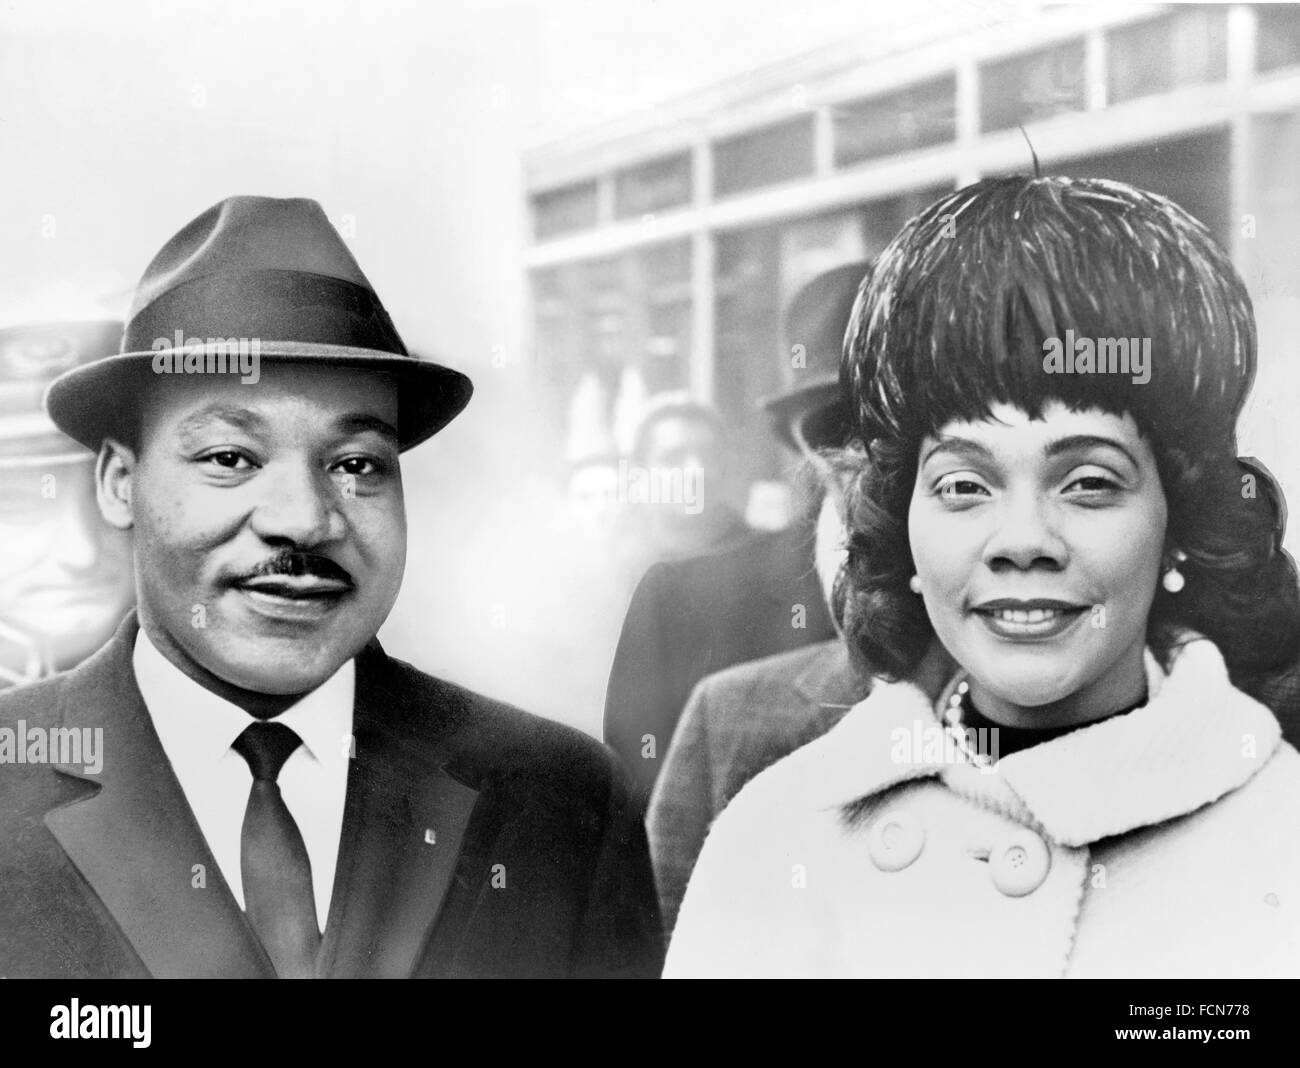 Dr Martin Luther King Jr with his wife, Coretta Scott King, 1964. Taken from a photographic print that was heavily retouched by hand. Stock Photo